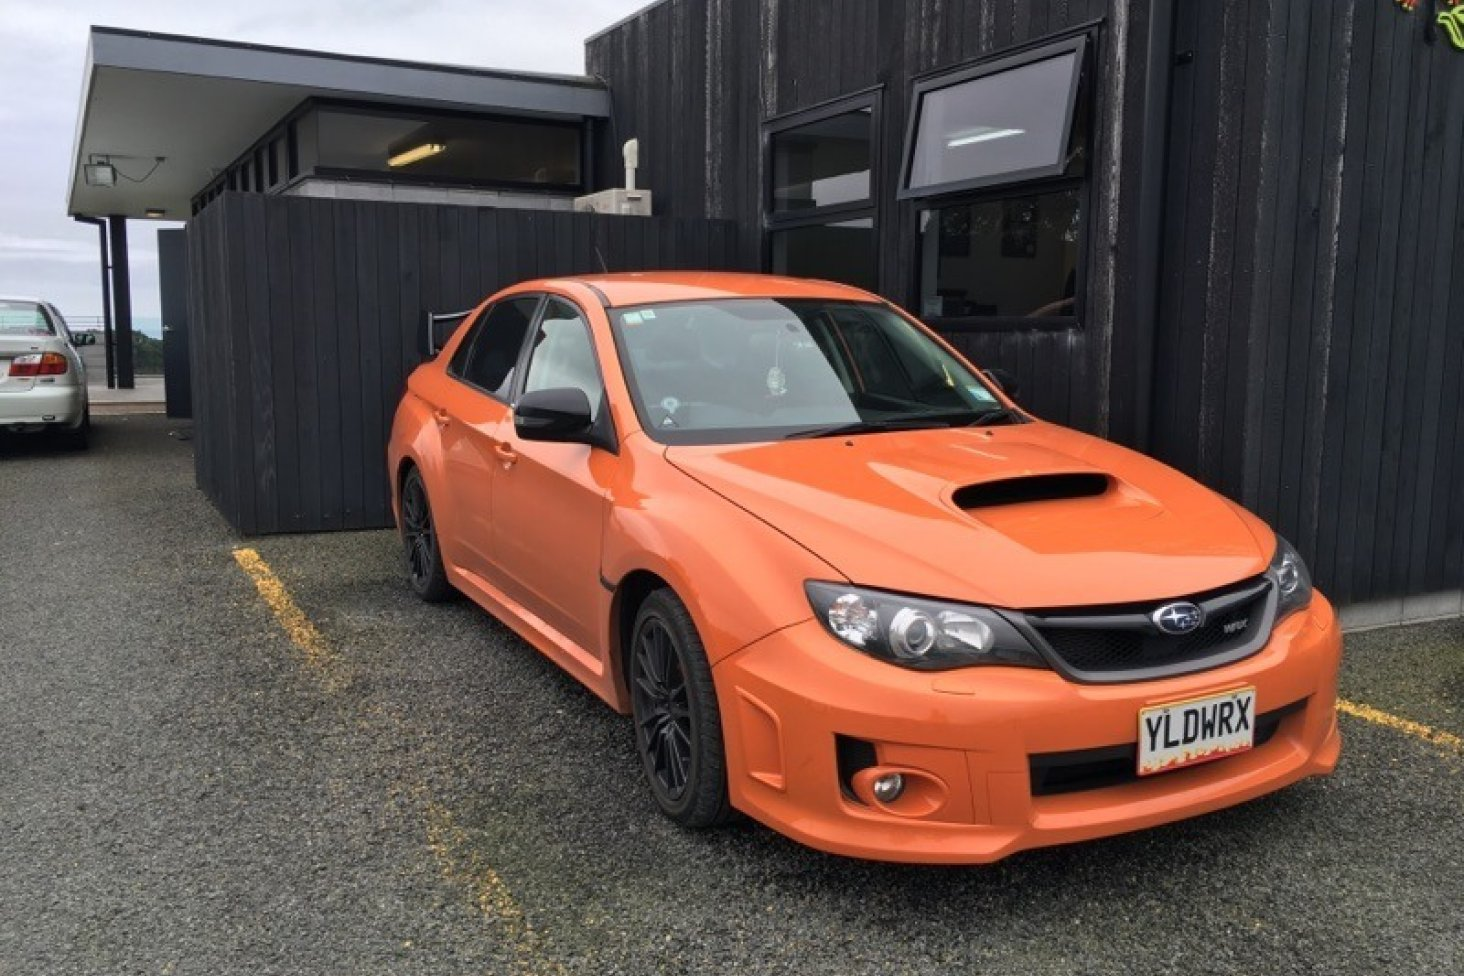 Simon Rowe's 2013 Subaru Impreza WRX Crouching Tiger limited edition is one of the 25 WRX competition winners.